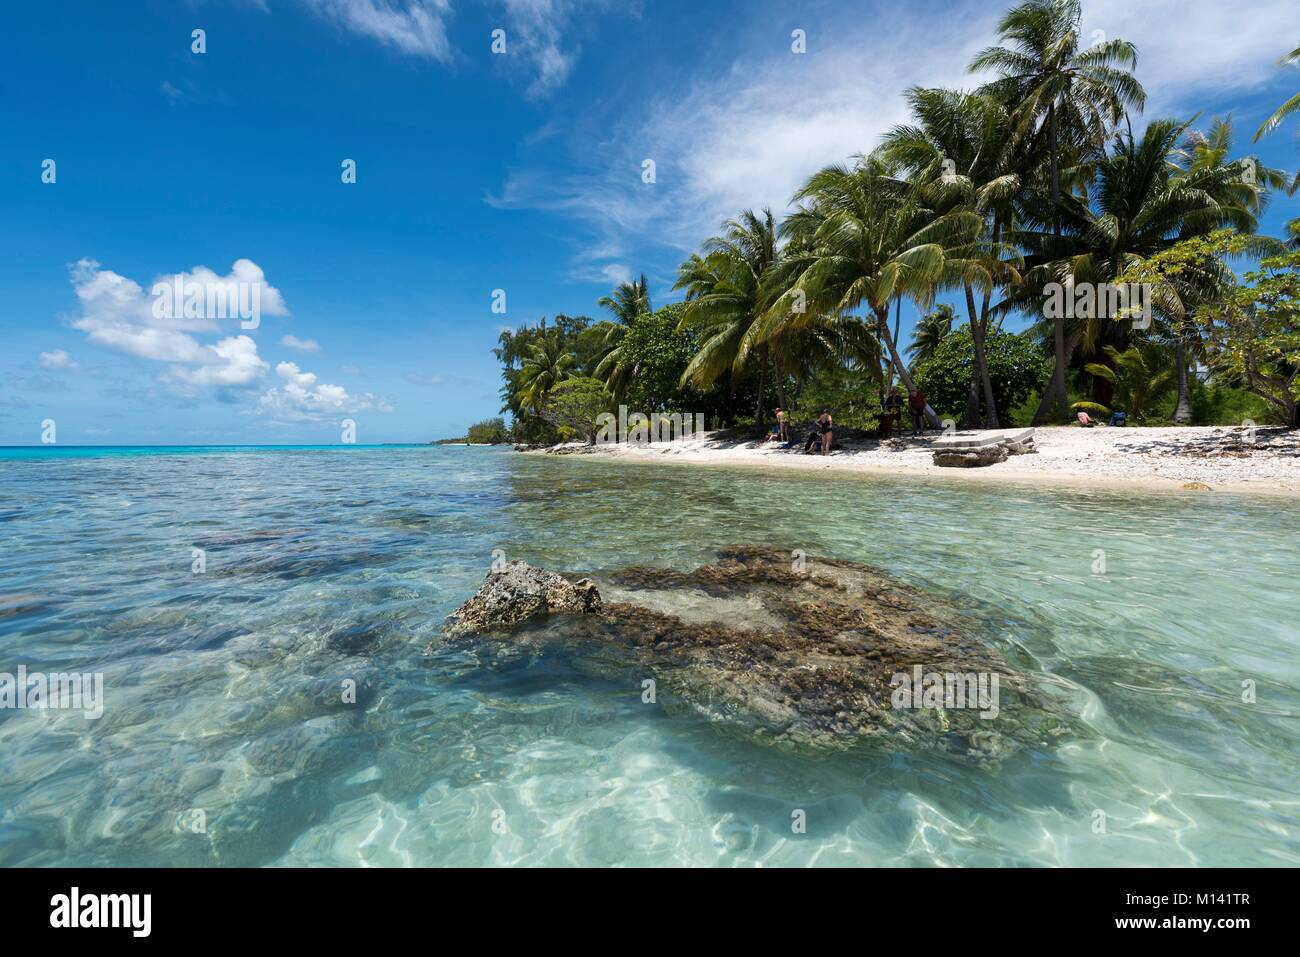 France, French Polynesia, Tuamotu Archipelago, Rangiroa Atoll, cruises aboard the Aranui 5 mixed cargo ship, potato - Stock Image